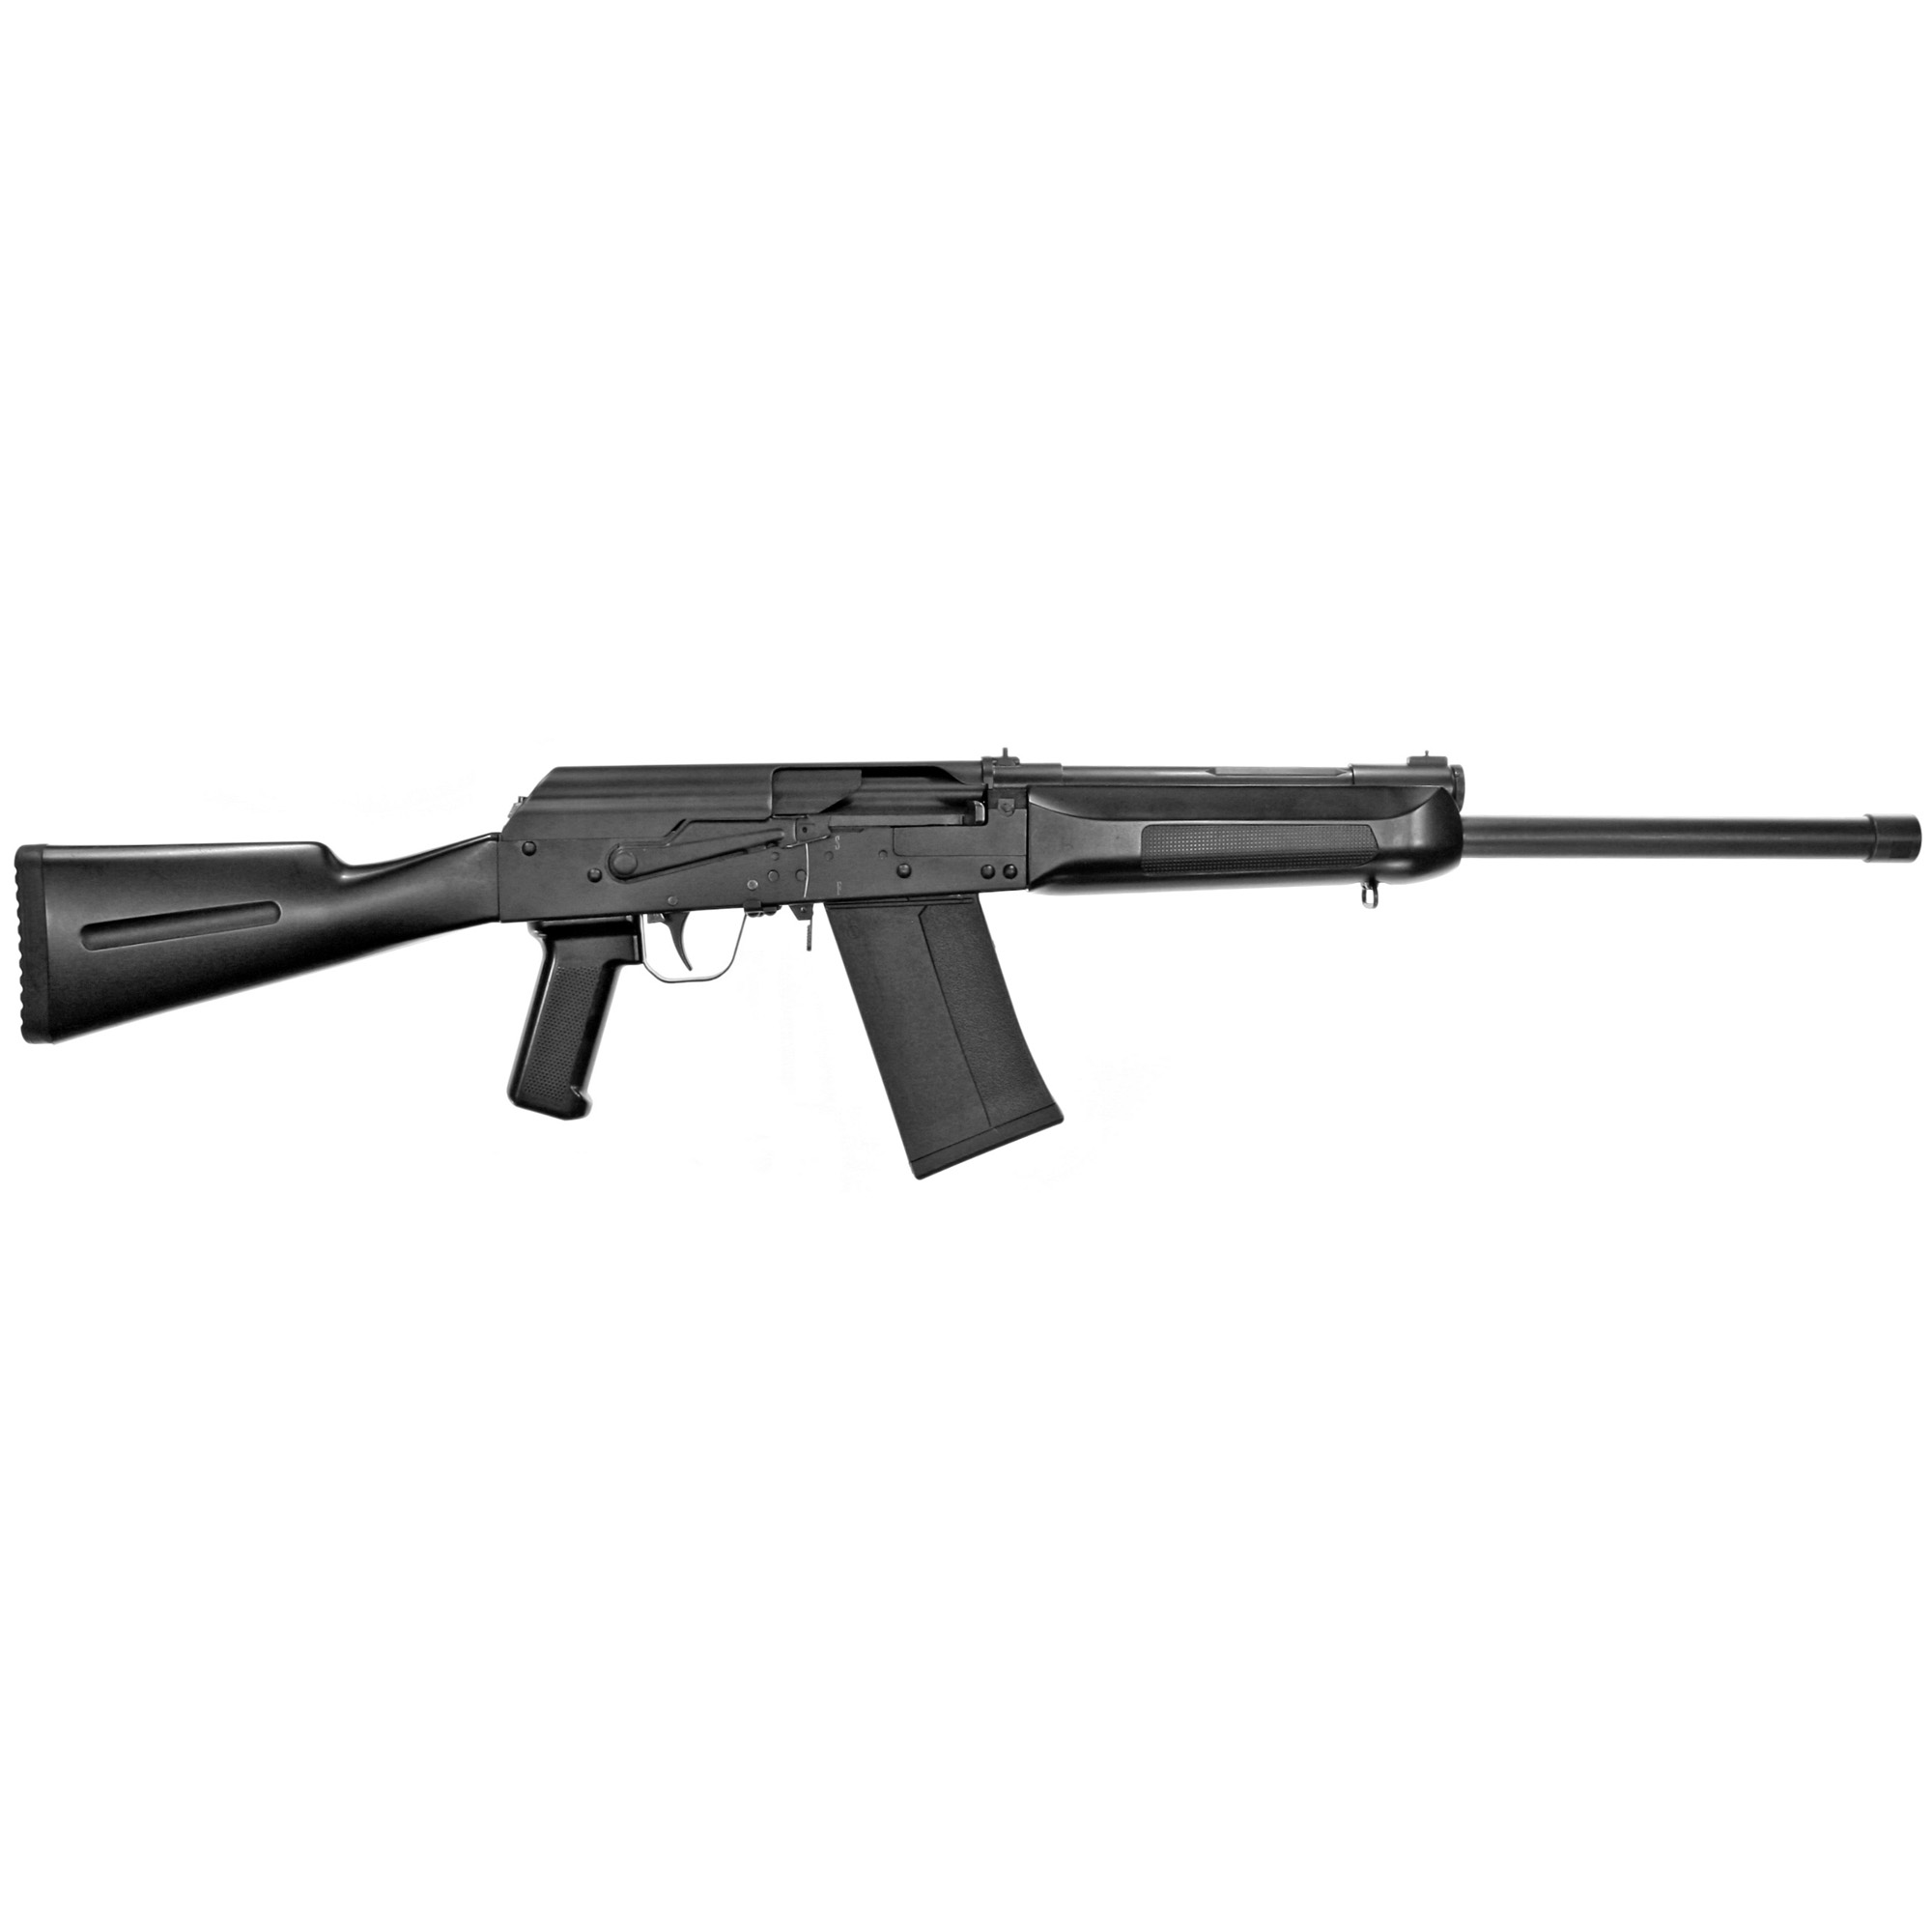 "The Lynx 12 is the next evolution in 12 Gauge Kalashnikov styled shotguns. This shotgun is similar to the Russian IZ 109 AK shotgun in design but offers many more shooter friendly features. The Lynx 12 interchanges with most Saiga parts like stick mags"" handguards & muzzle devices. You can easily upgrade the rear stock to a Tactical set up if you desire. Hammer forged bolt for increased strength and long life. Any Saiga 12 style magazine is compatible. Chrome lined 19"" barrel"" 3"" chamber."